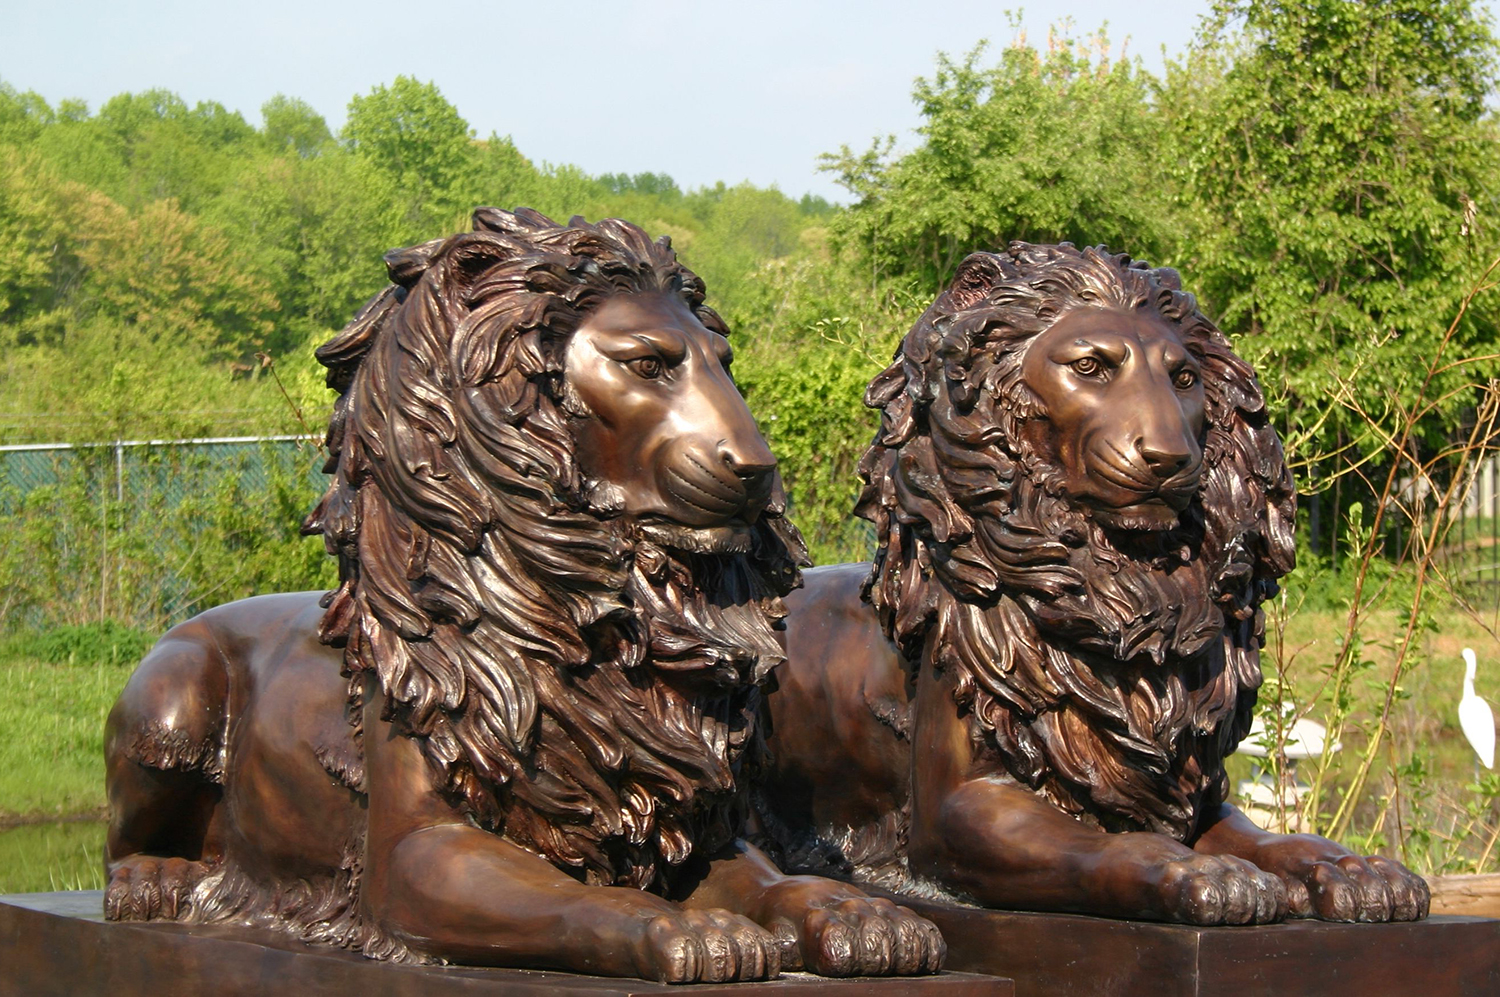 Hand Crafted Life Size Bronze Lions Sculpture